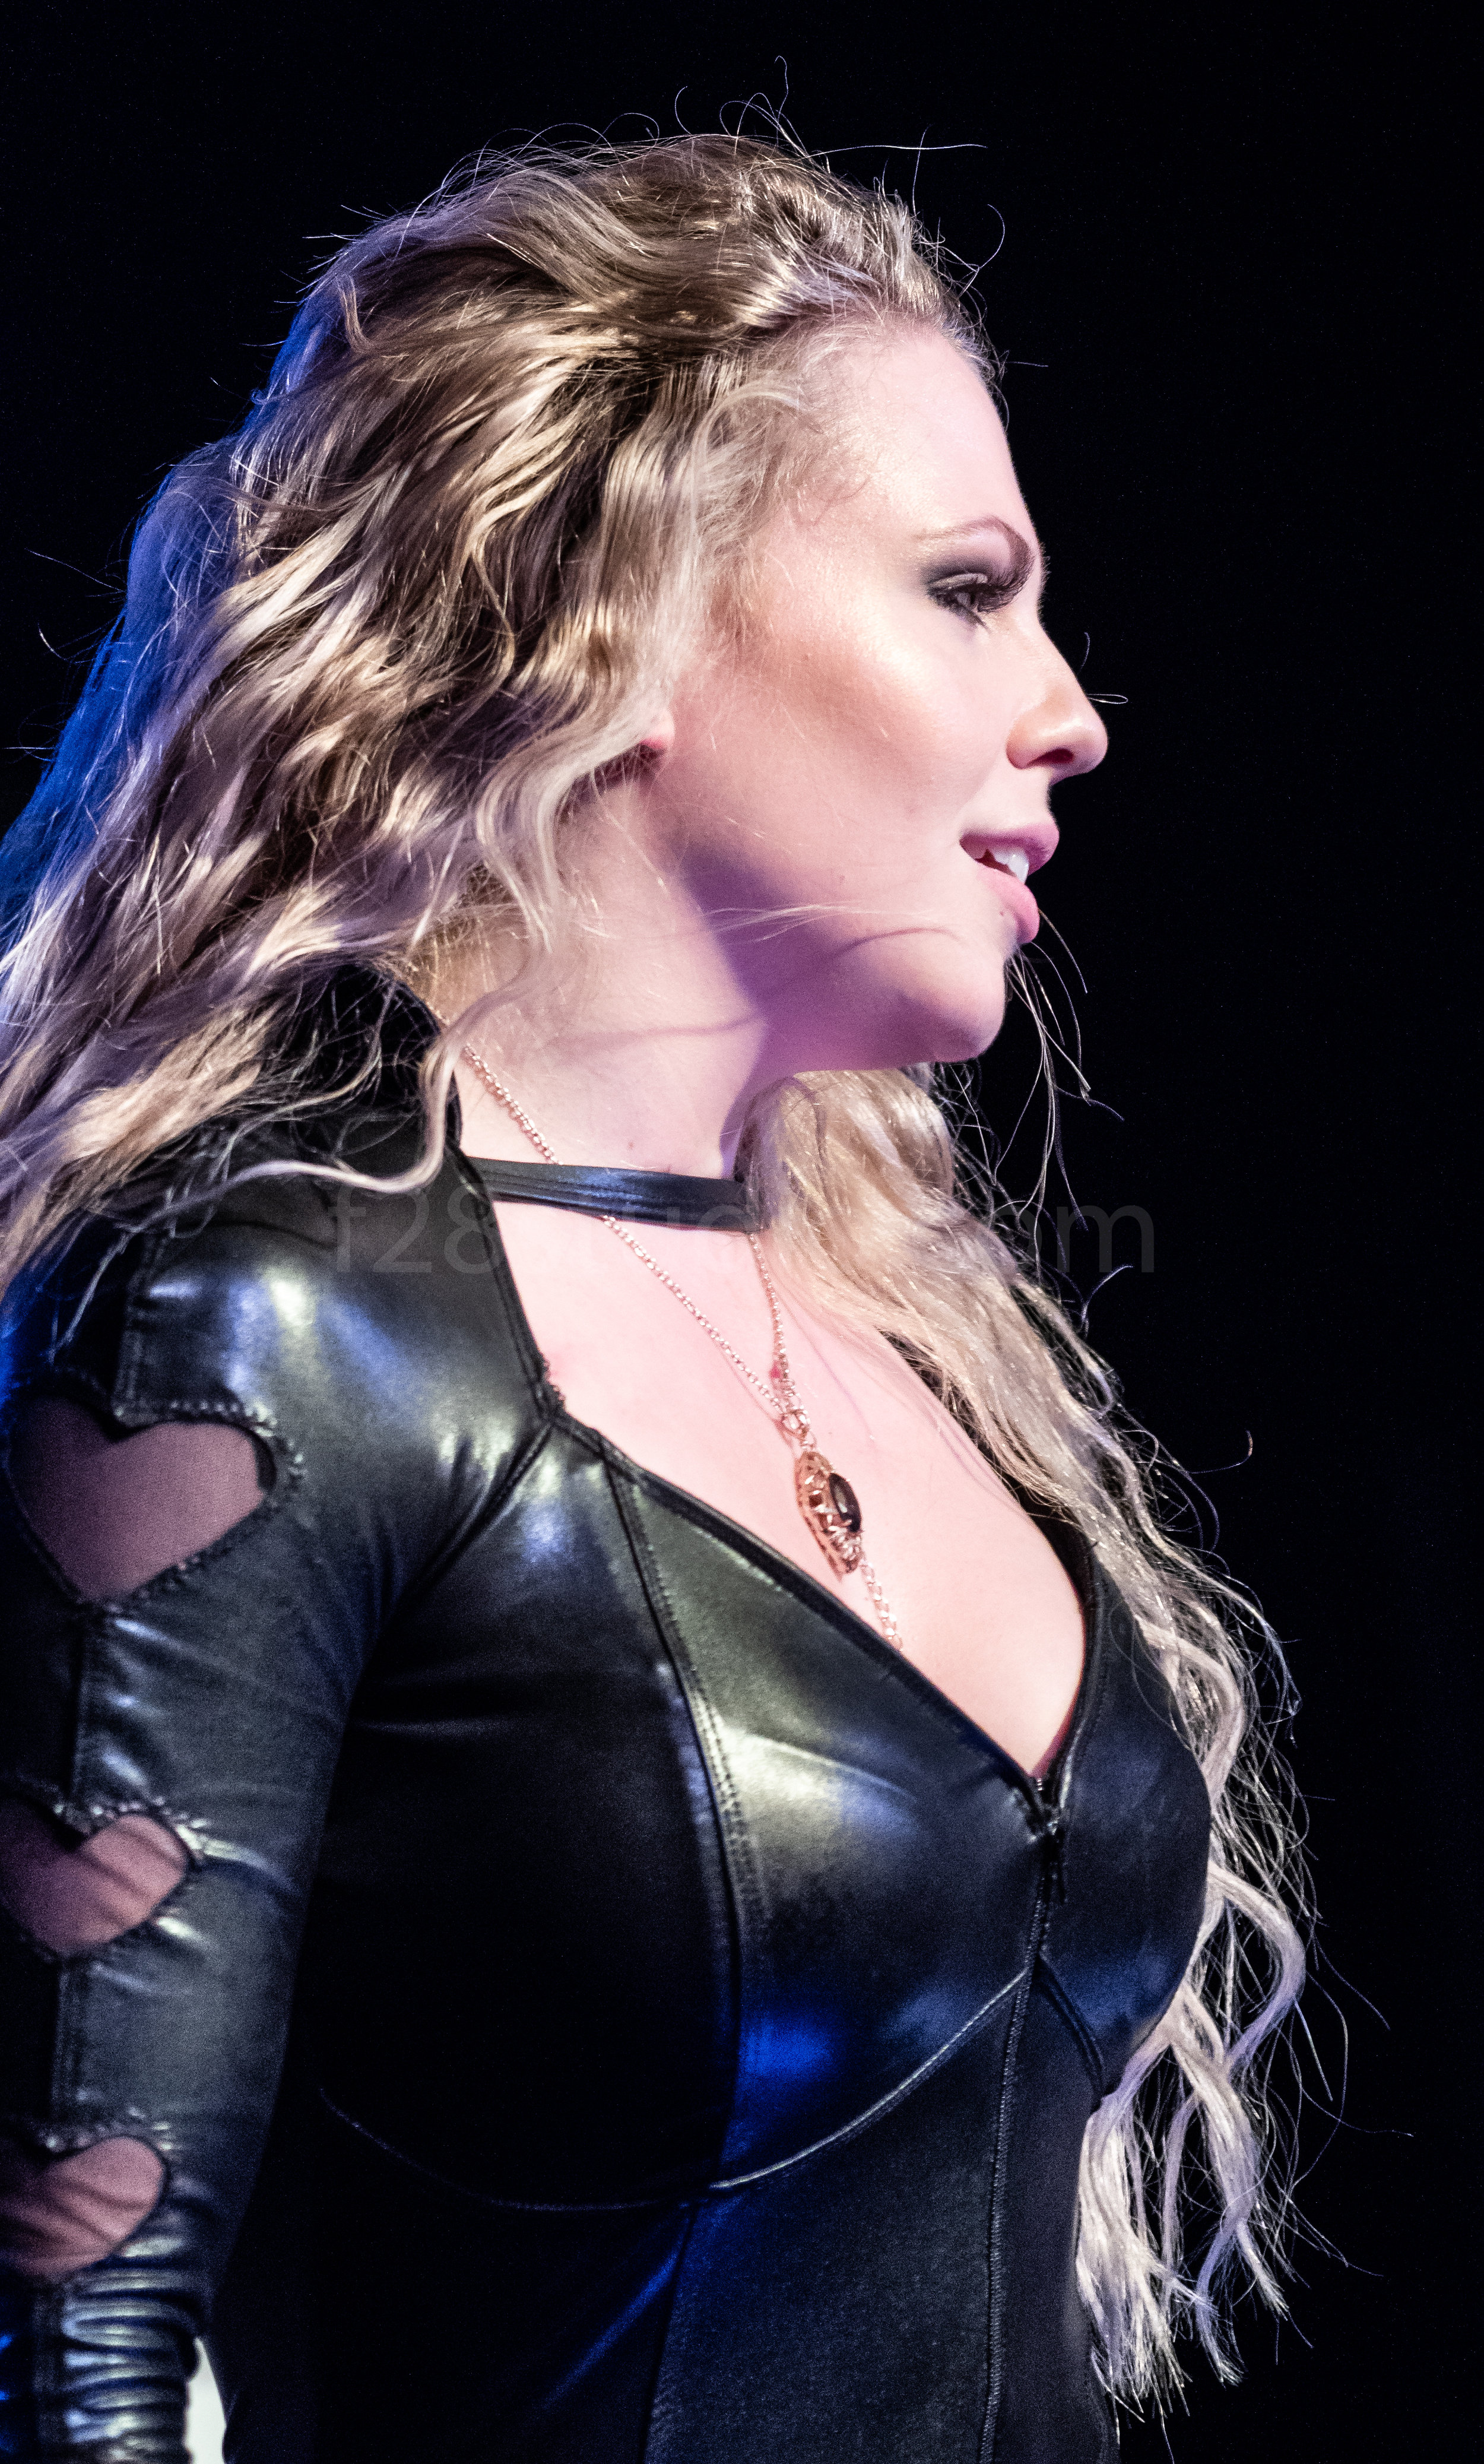 Kobra Paige - Lead Vocals for Kobra and the Lotus